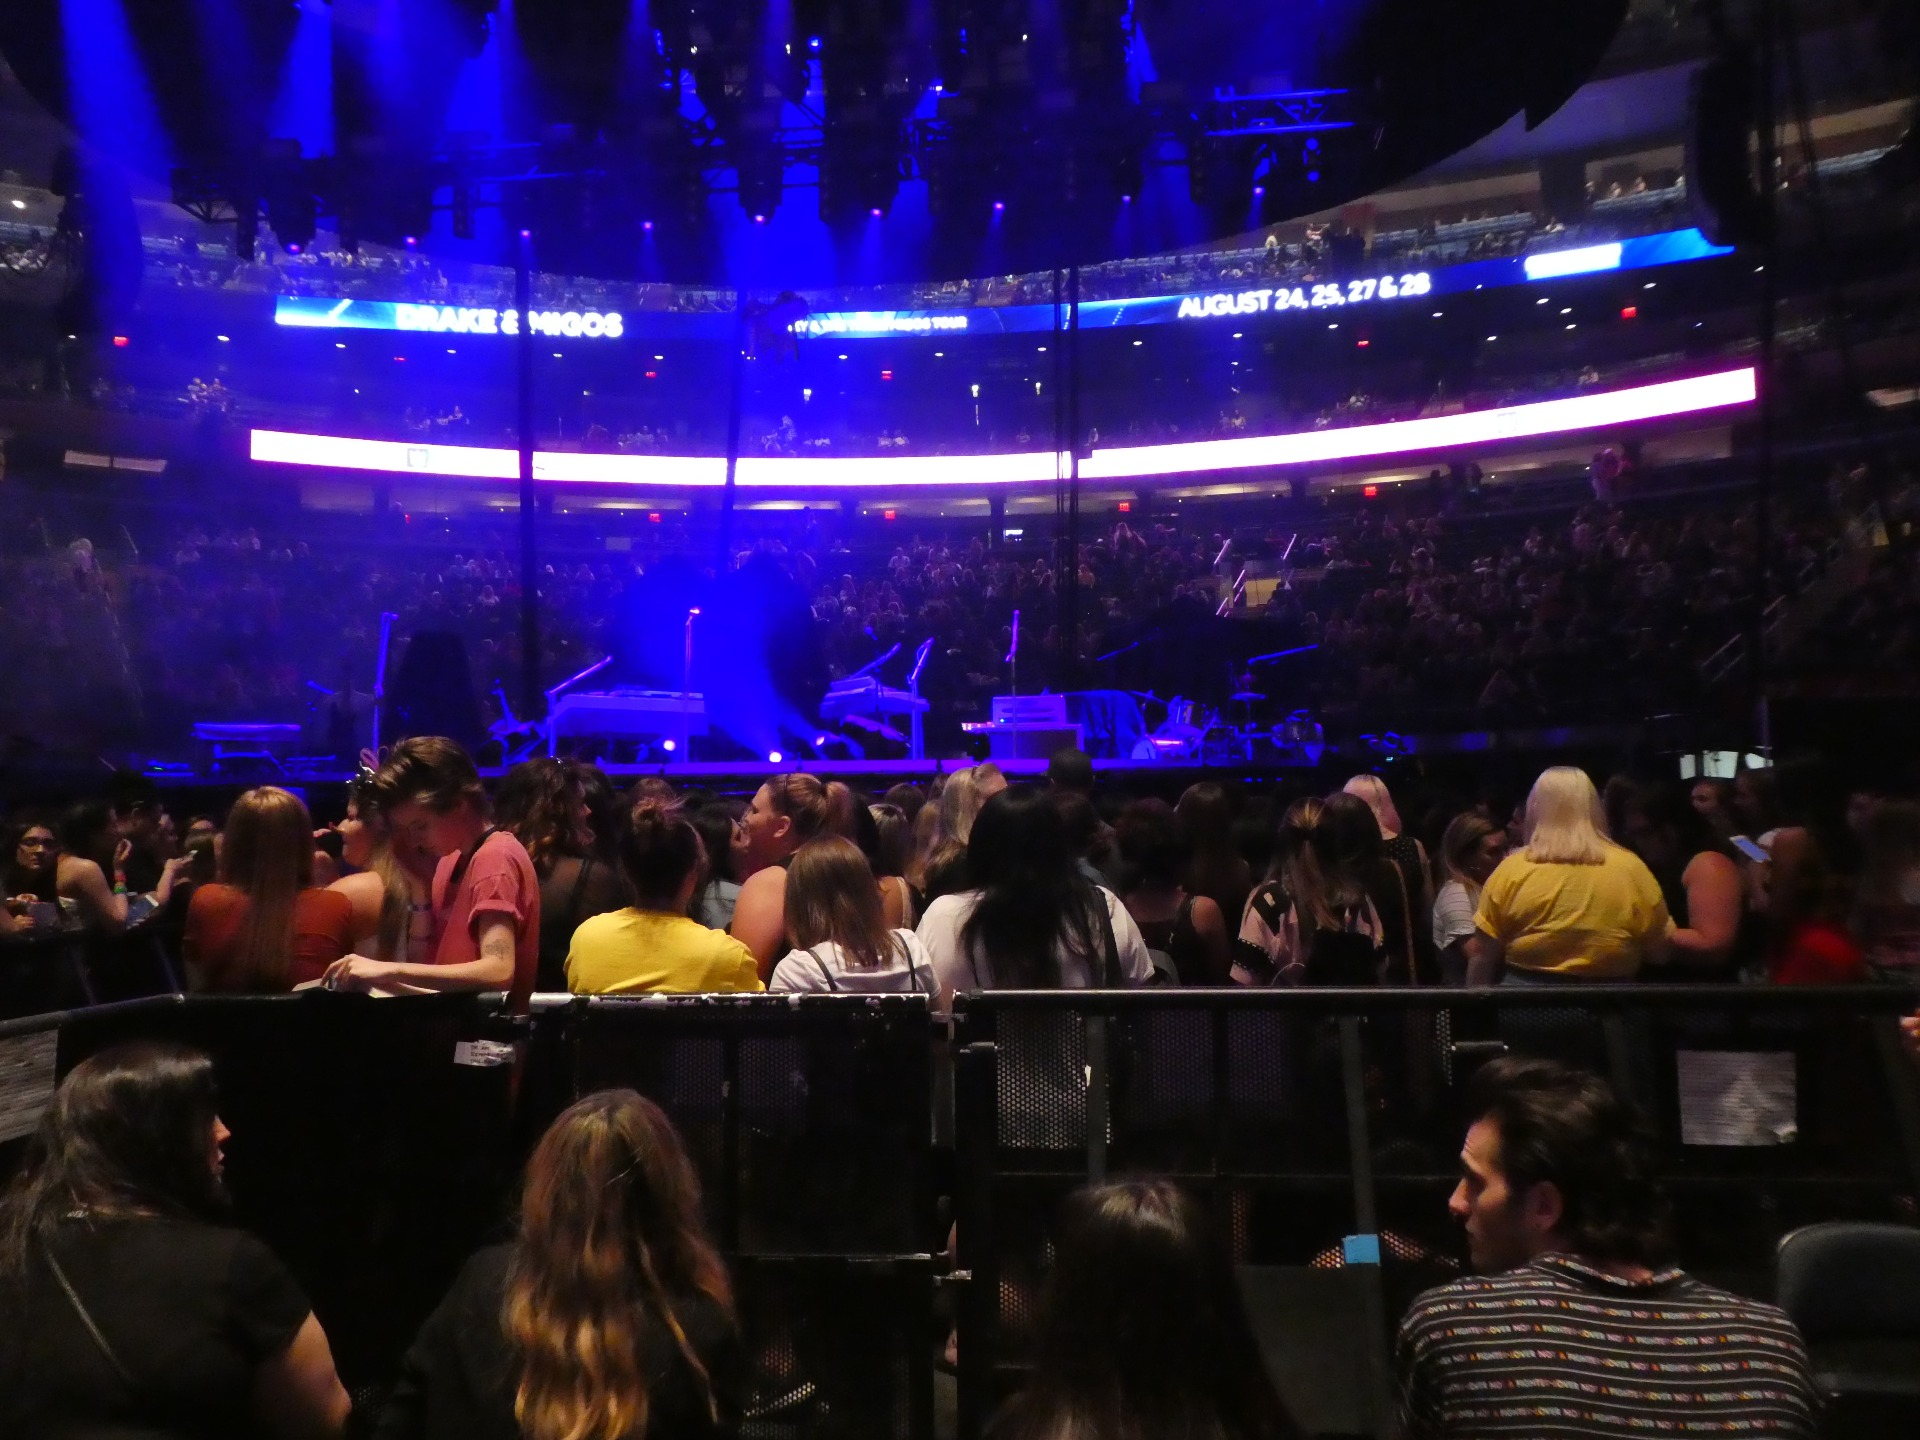 Madison Square Garden Section Floor B Row 4 Seat 5